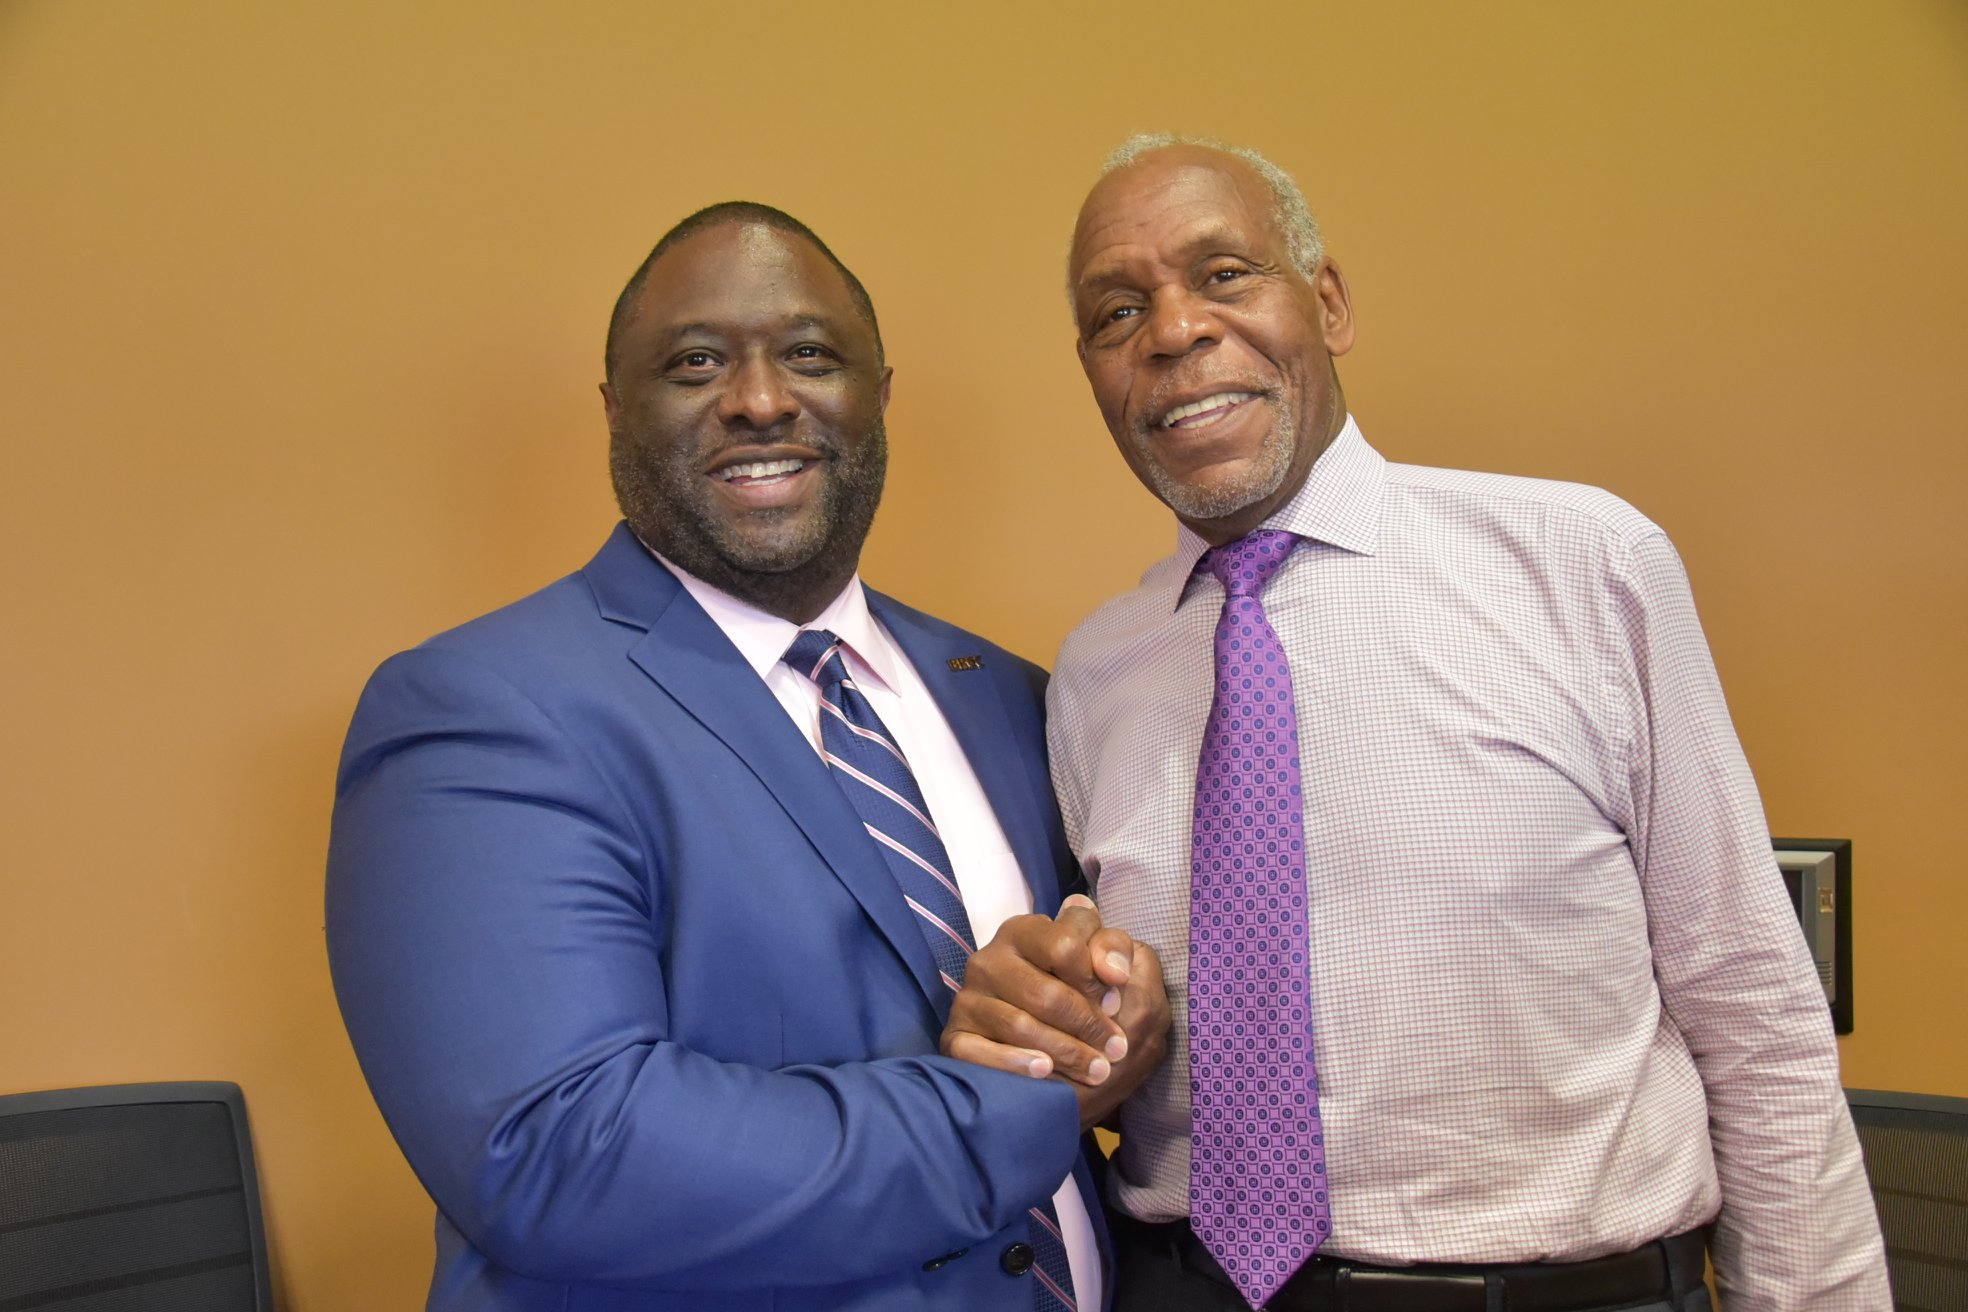 Actor Danny Glover and BRCC Chancellor Photo Credit C Major